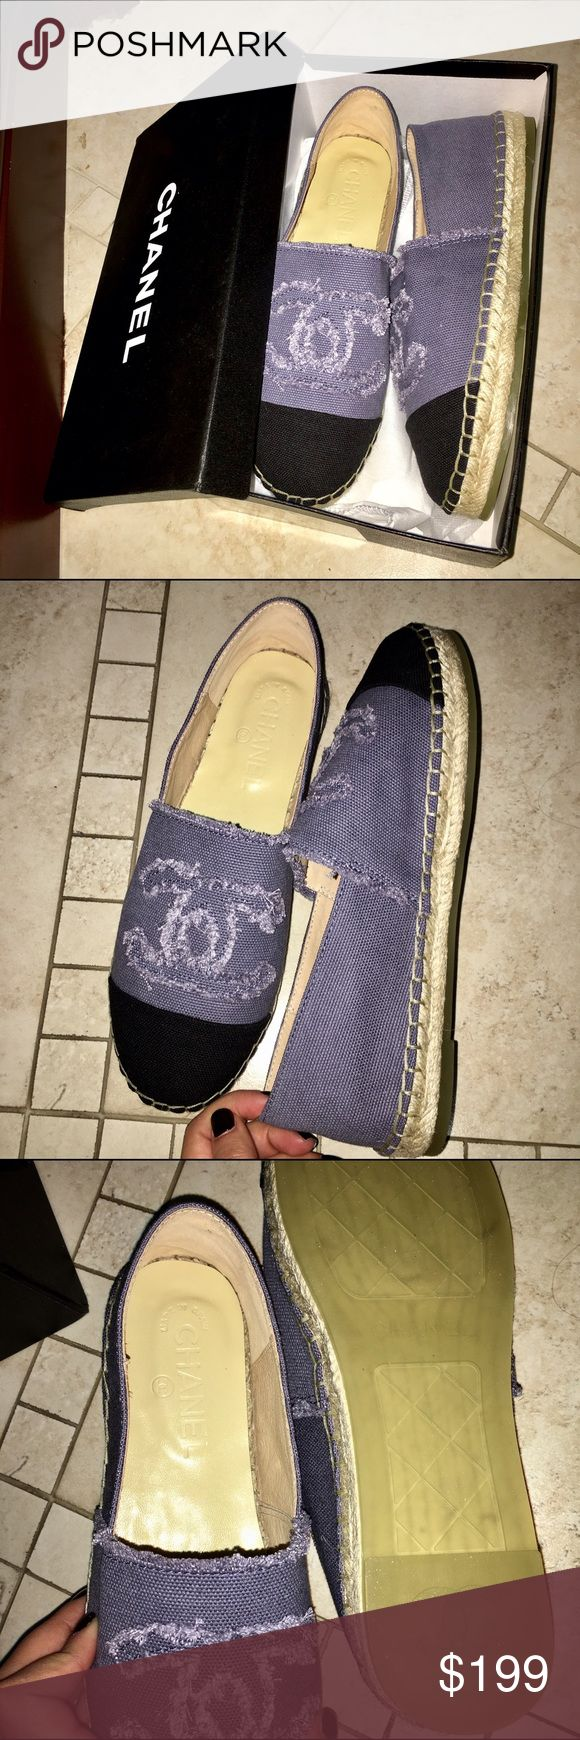 💜 CHANEL ESPADRILLES 💜 I just purchased these for $300. They're brand new, never worn. These are the cutest espadrilles I own!! They're very comfortable, so whoever purchases these wins big! Enjoy ladies! 💋🔥 Bottom of the shoe states: size 39, made in Spain. ⚡️ NOTE: Price reflects authenticity!! So please don't ask!🔹 if you want these, comment so I can make you your own listing! CHANEL Shoes Espadrilles